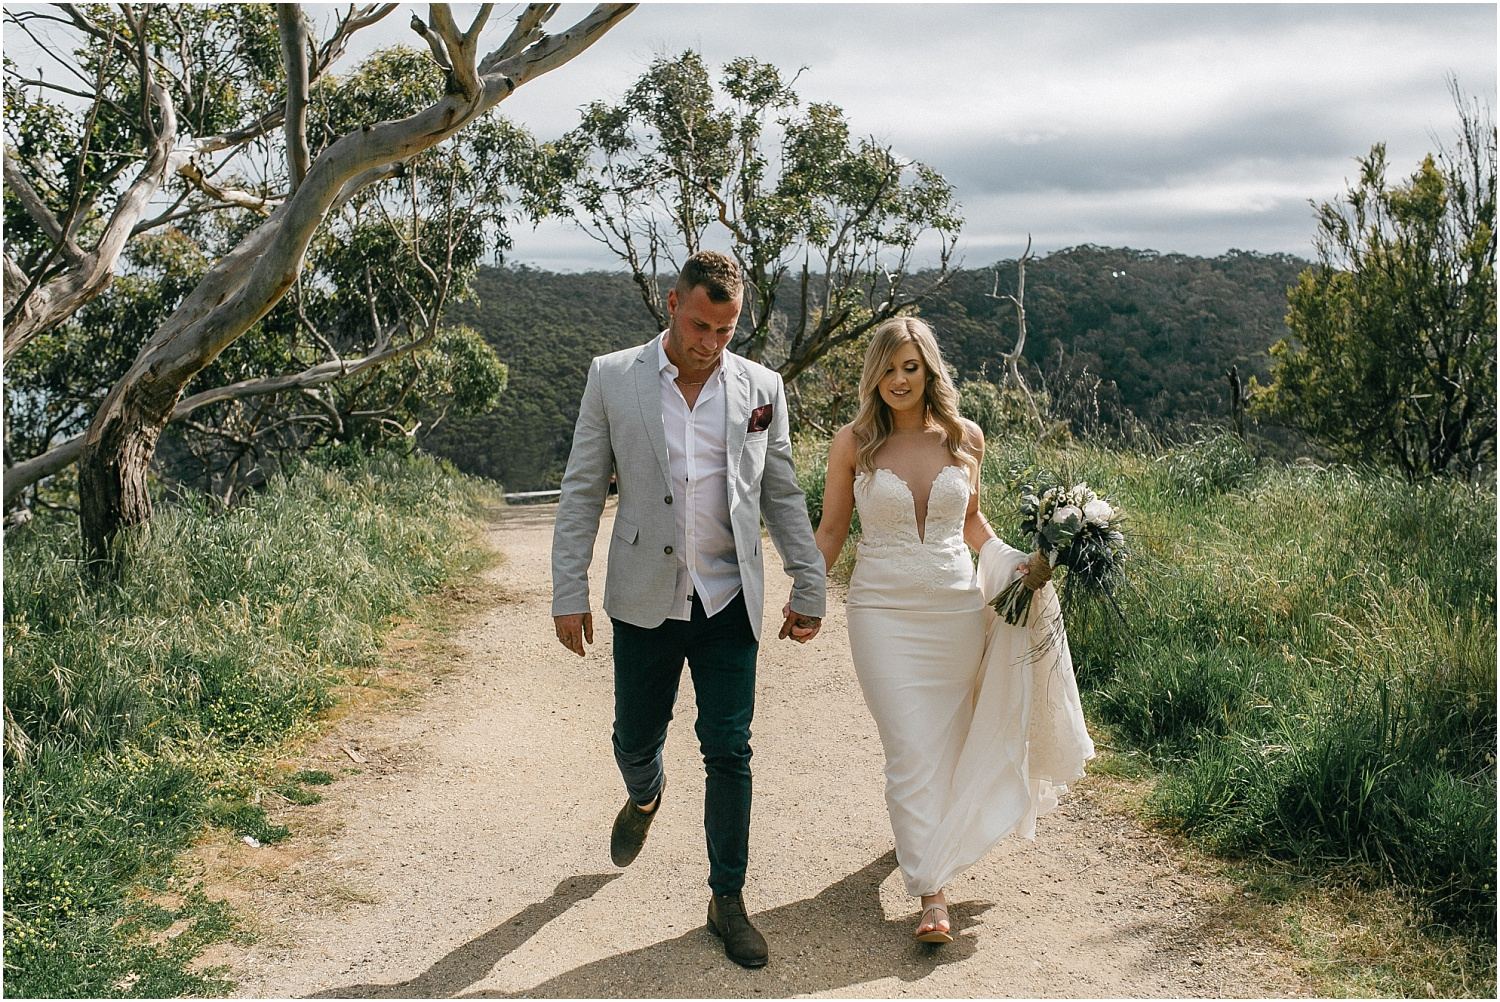 Renee and Ash's real elopement in Lorne on the Great Ocean Roadwith the ceremony at erskin falls._0061.jpg